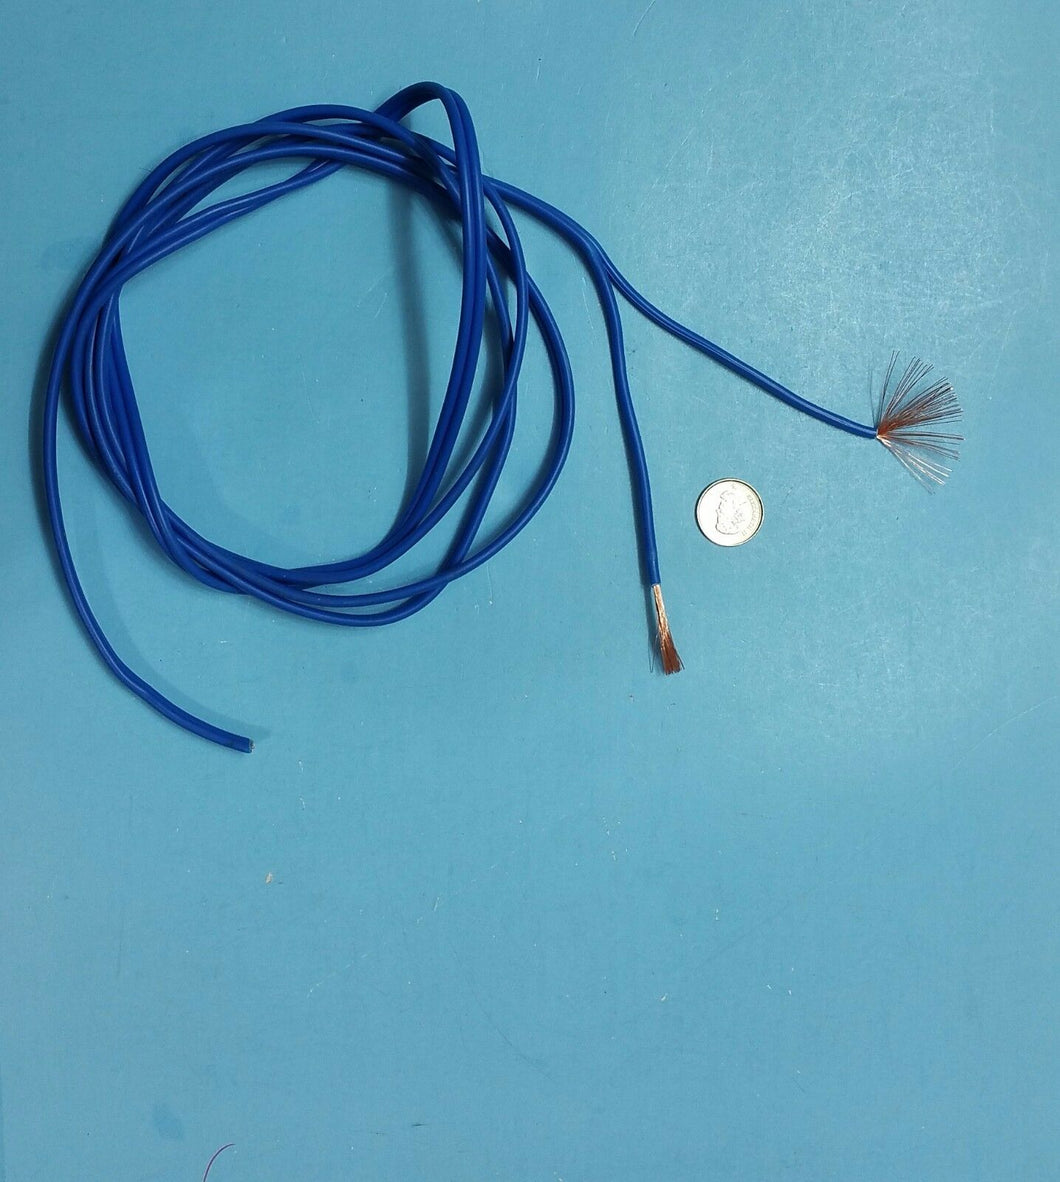 2m long blue, 2Pin,50 cores,flexible electric cable wire for Car,  RC,  Servo FREE CANADA SHIPPING - Electronics TV Parts - GalaParts.com